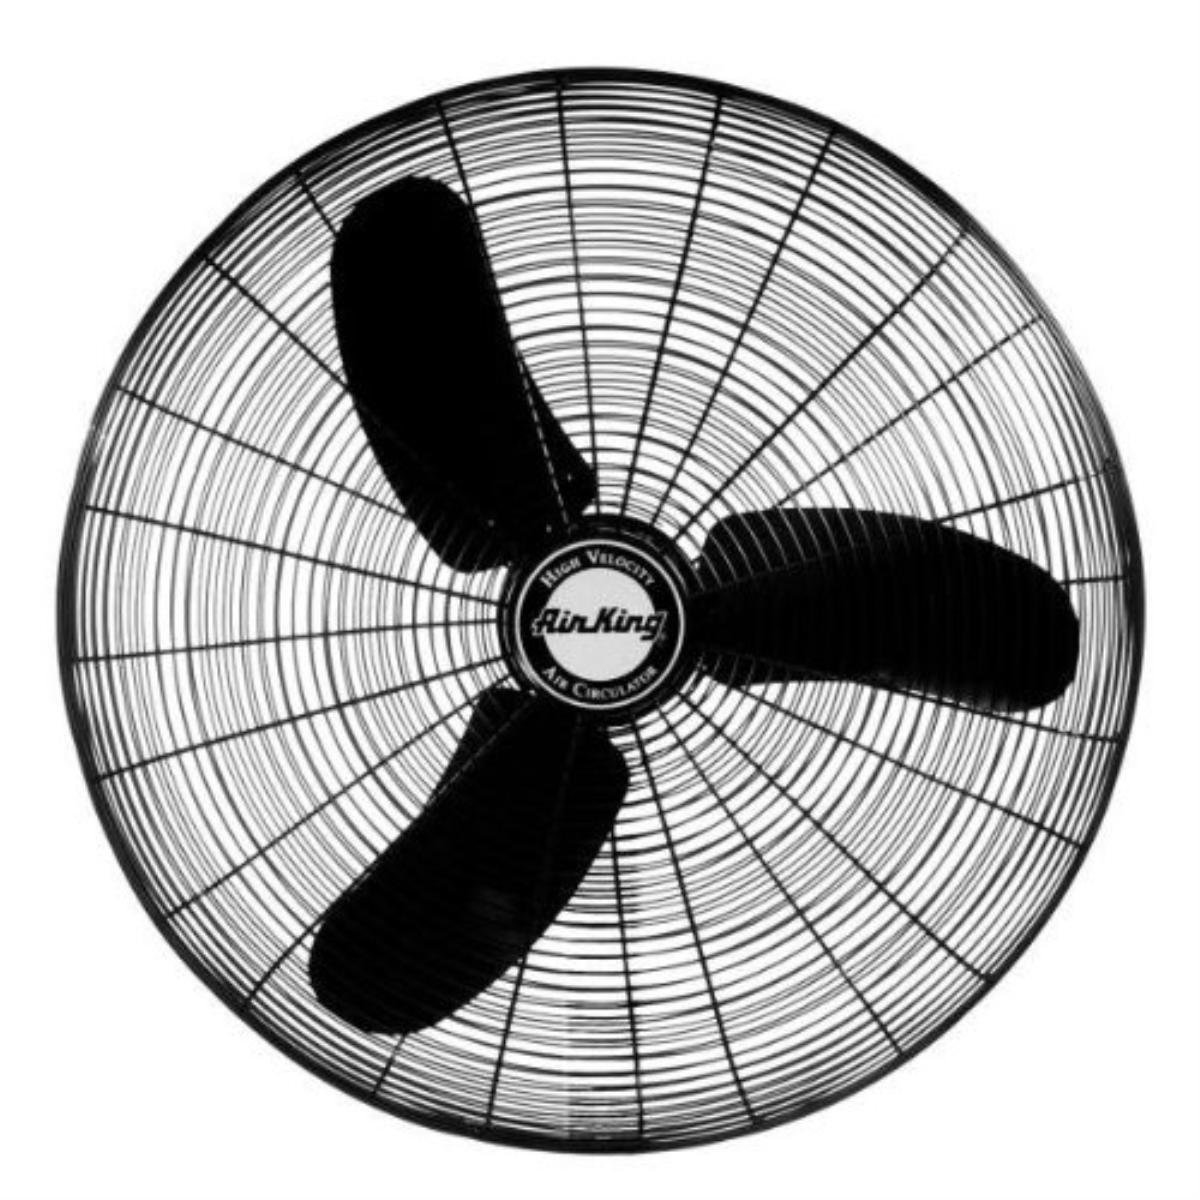 "Air King 9171H 24"" 1/3 HP Industrial Grade High Velocity Assembled Fan Head"